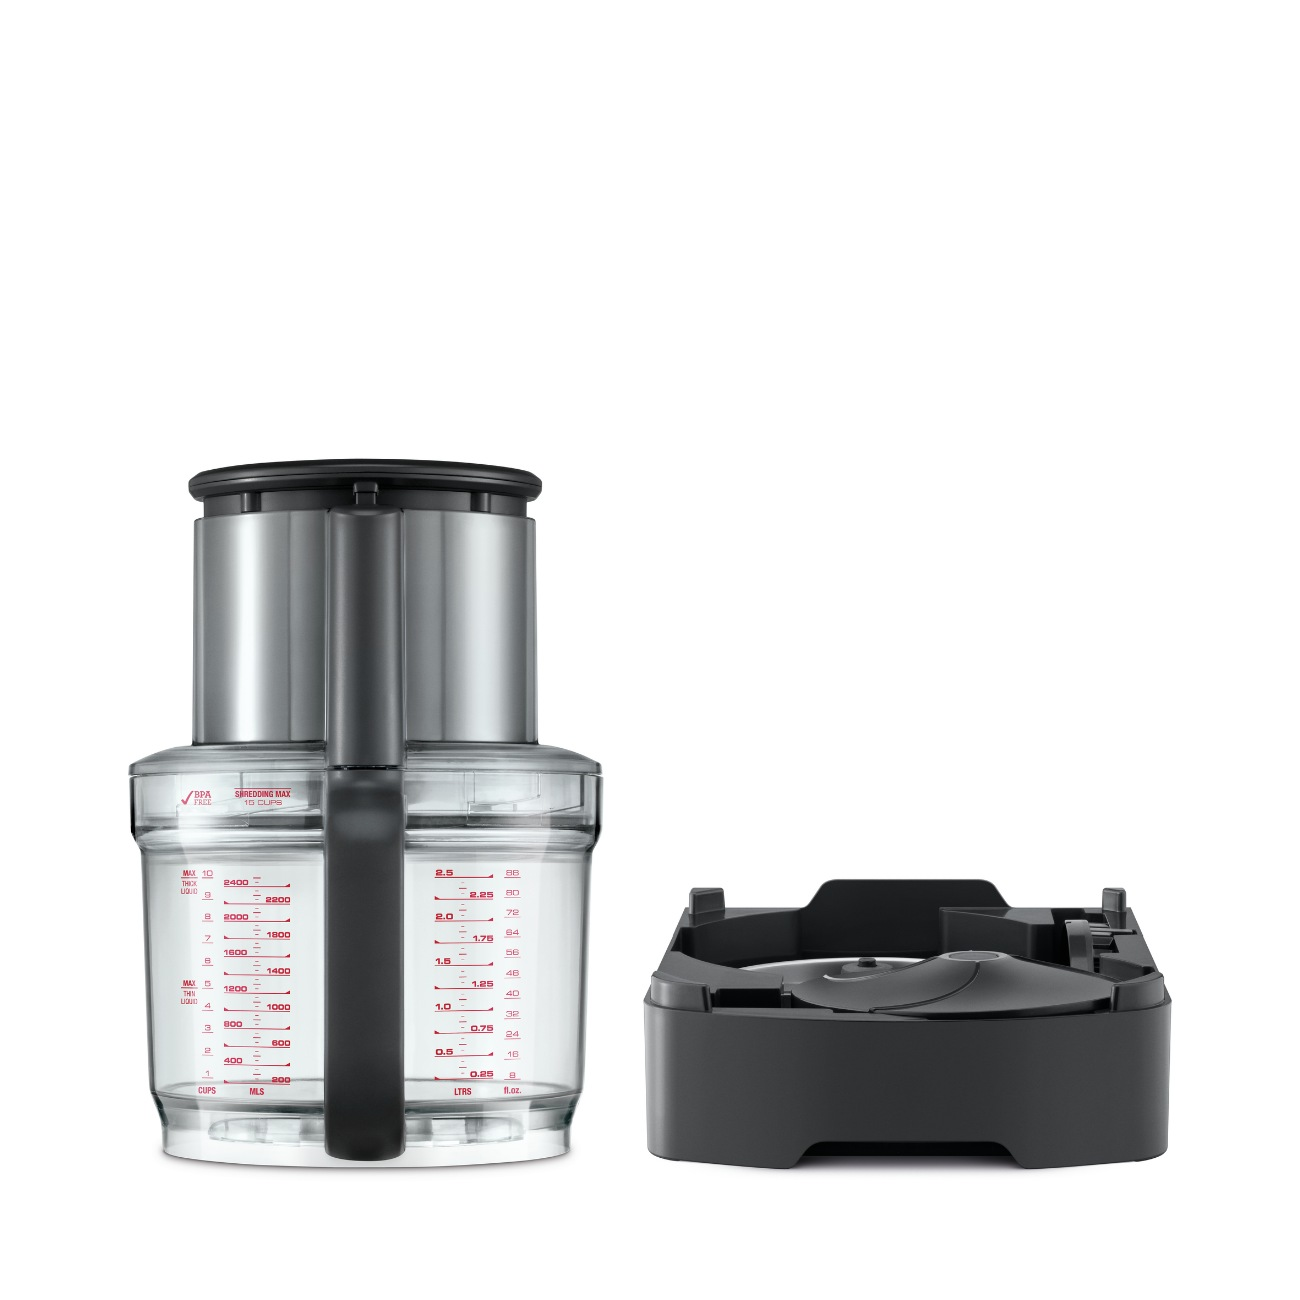 the Breville Dicing & Peeling Compatibility Kit